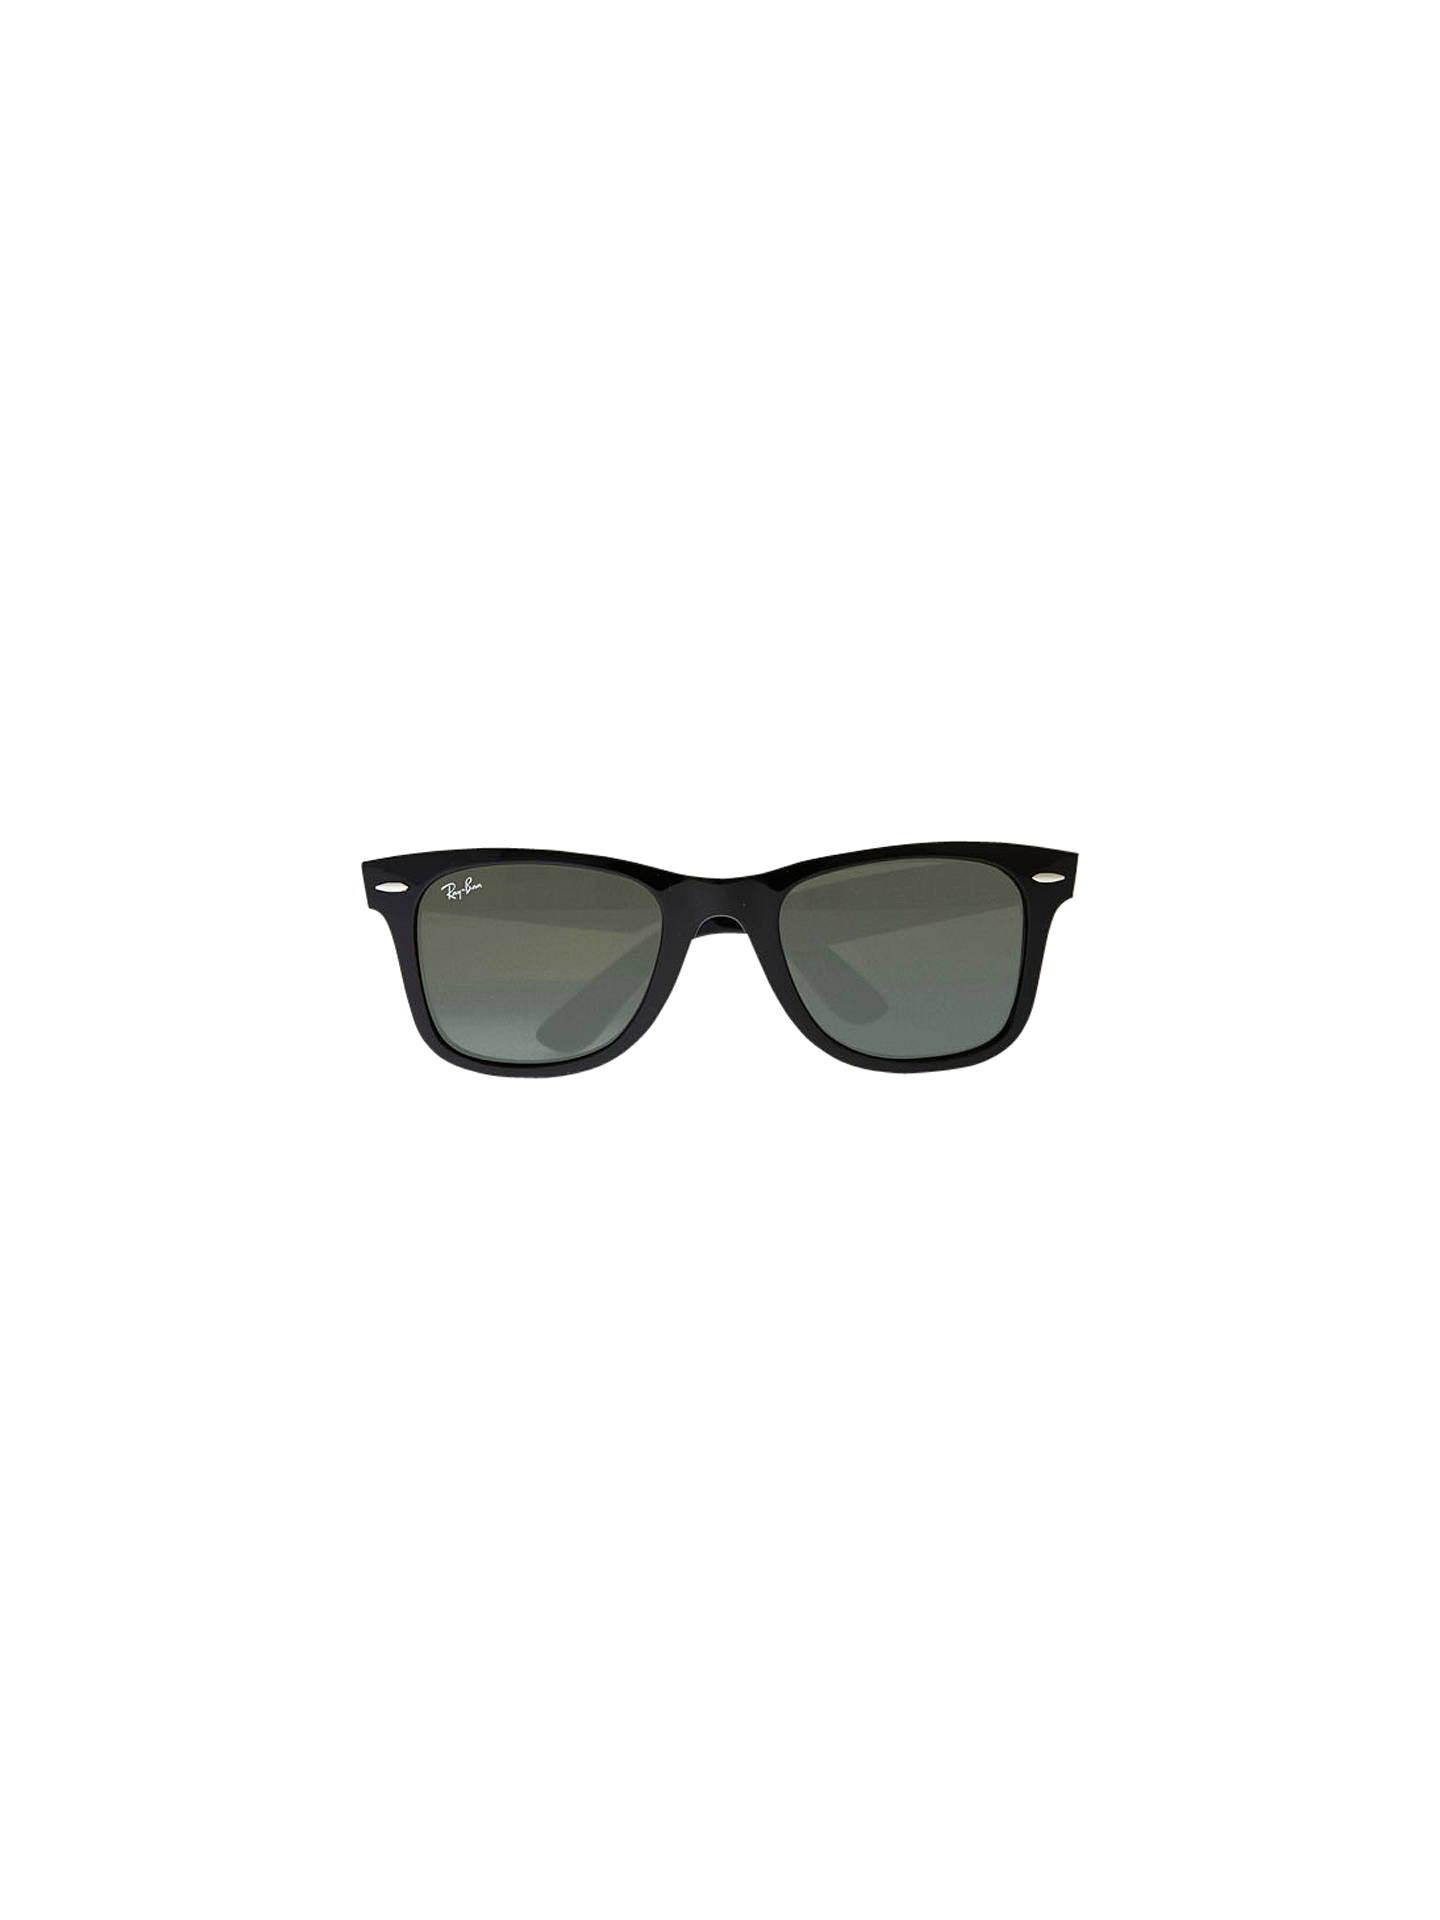 d1f6a964189 Ray-Ban RB2140 Original Wayfarer Sunglasses at John Lewis   Partners